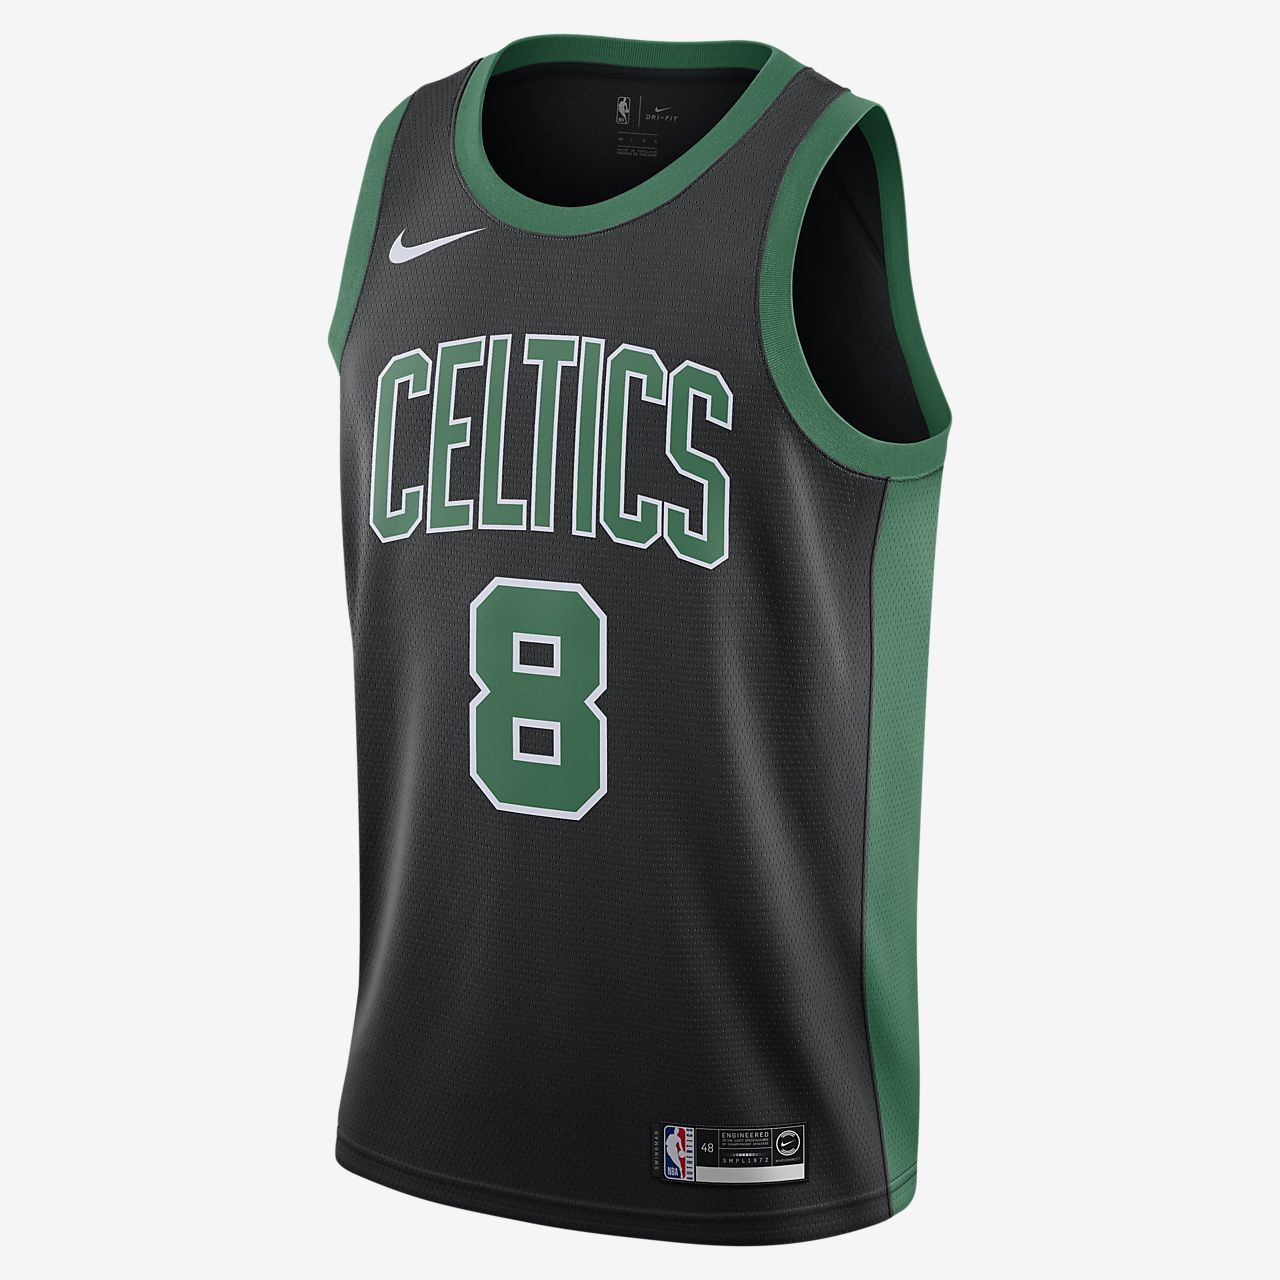 Maillot Nike NBA Swingman Kemba Walker Celtics Statement Edition